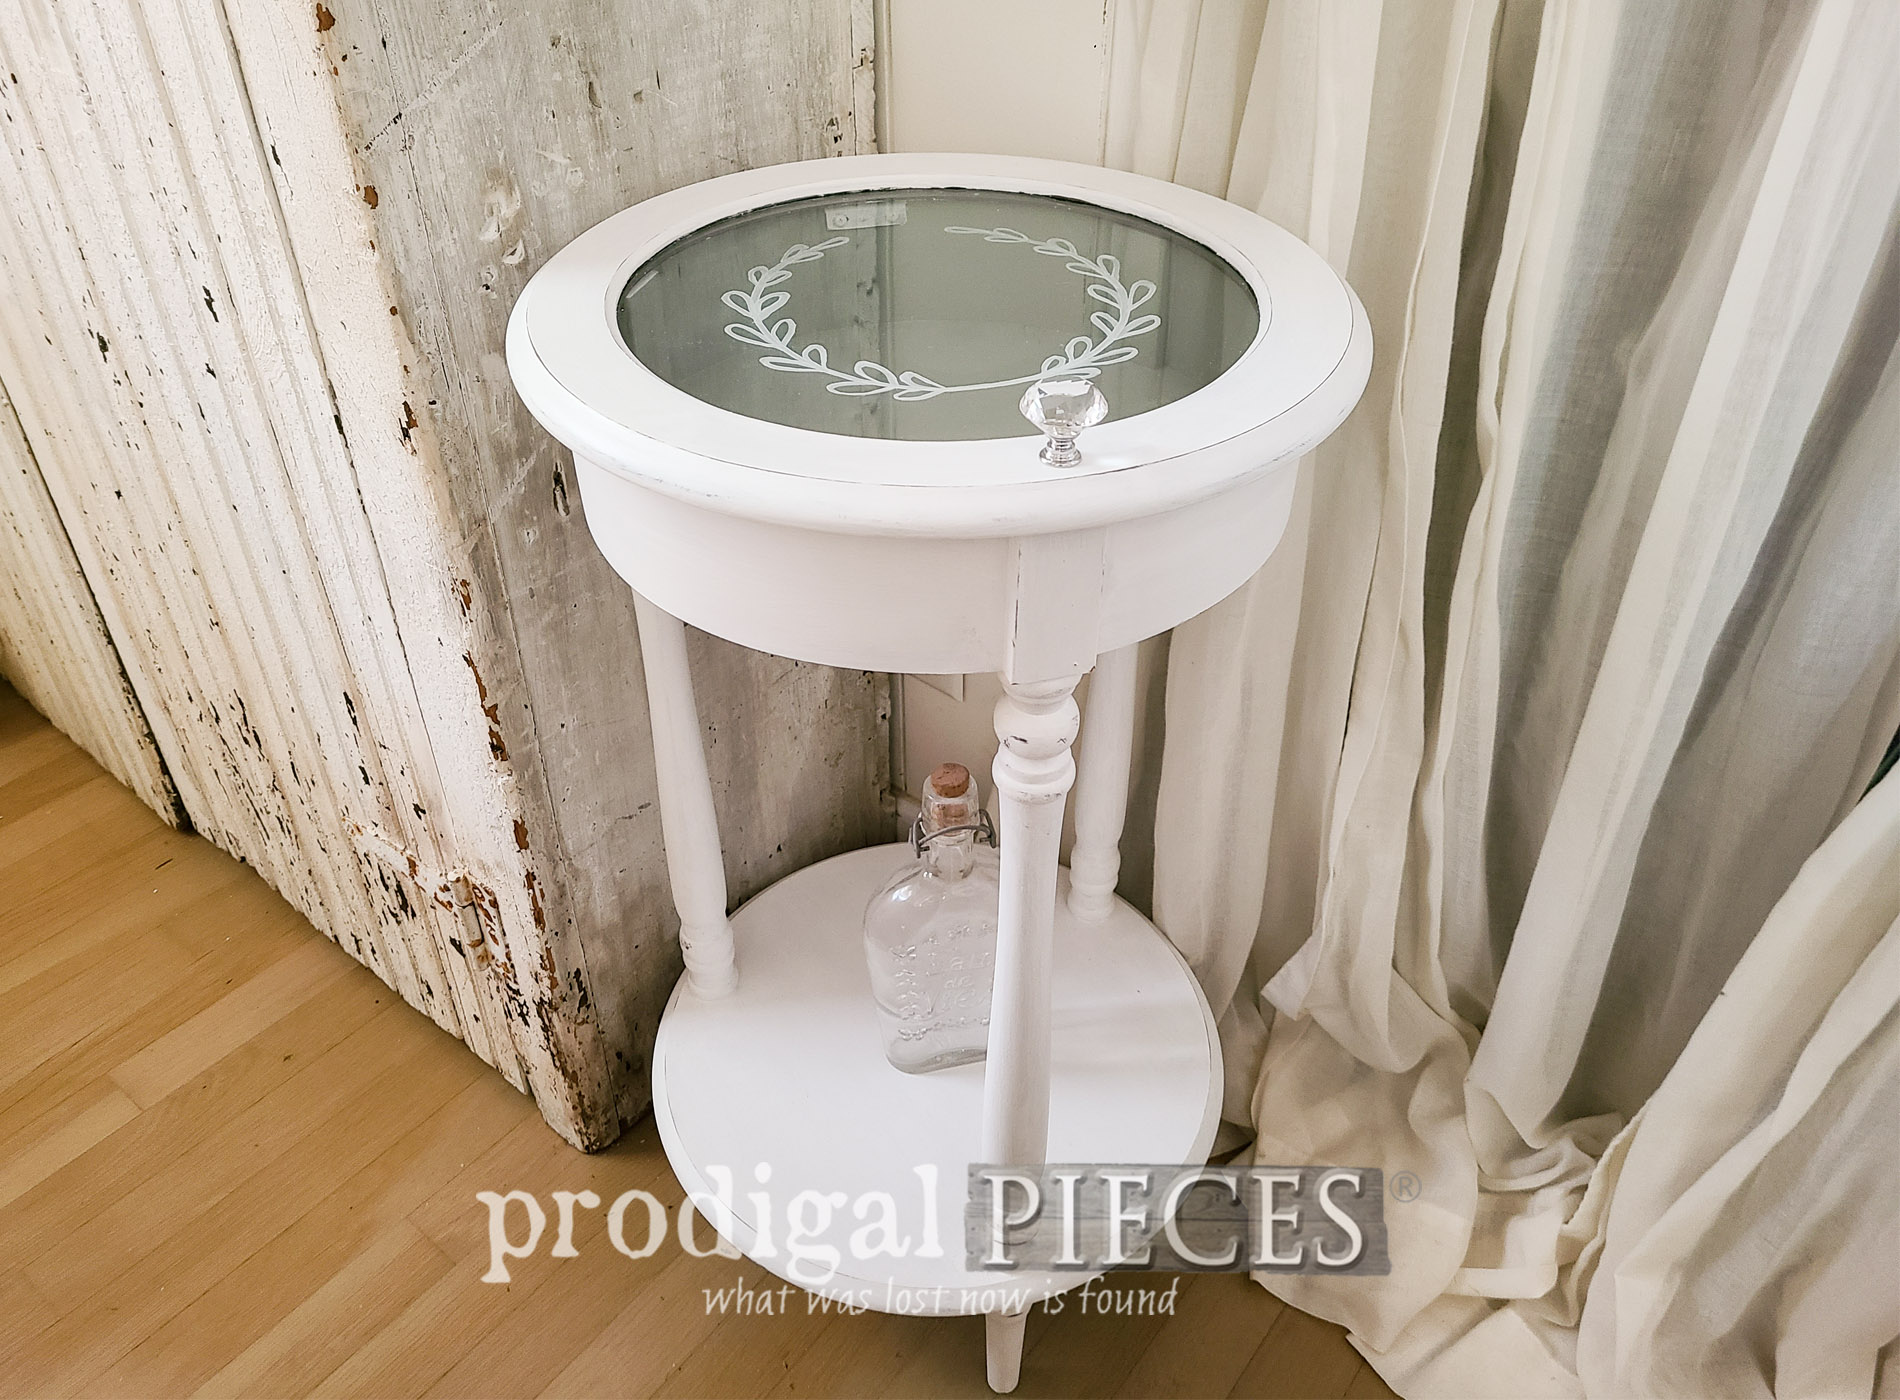 Featured Tiered Side Table with Glass Cabinet Top by Larissa of Prodigal Pieces | prodigalpieces.com #prodigalpieces #furniture #home #shabbychic #homedecor